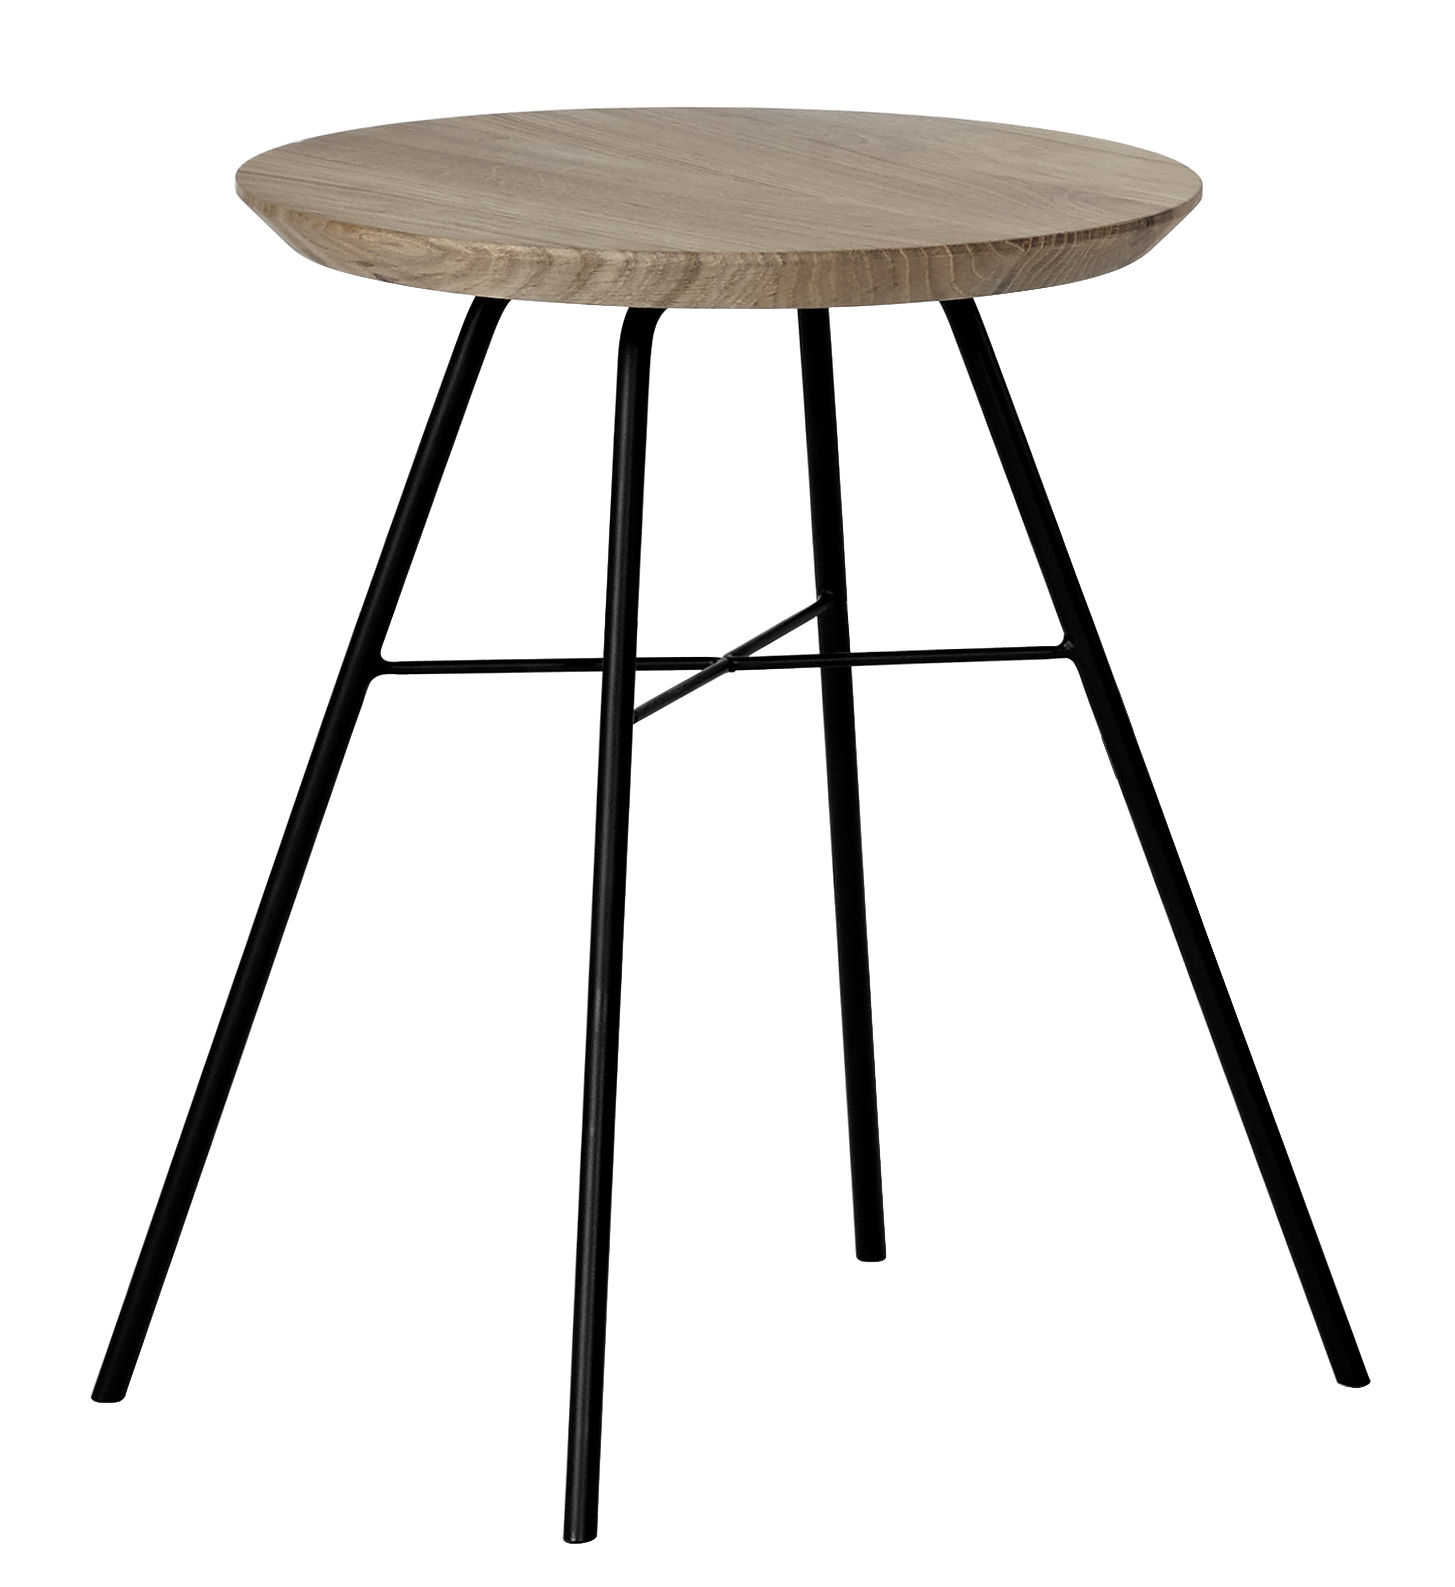 Wooden Discs For Stools ~ Disc stool wood metal h cm natural oak black by